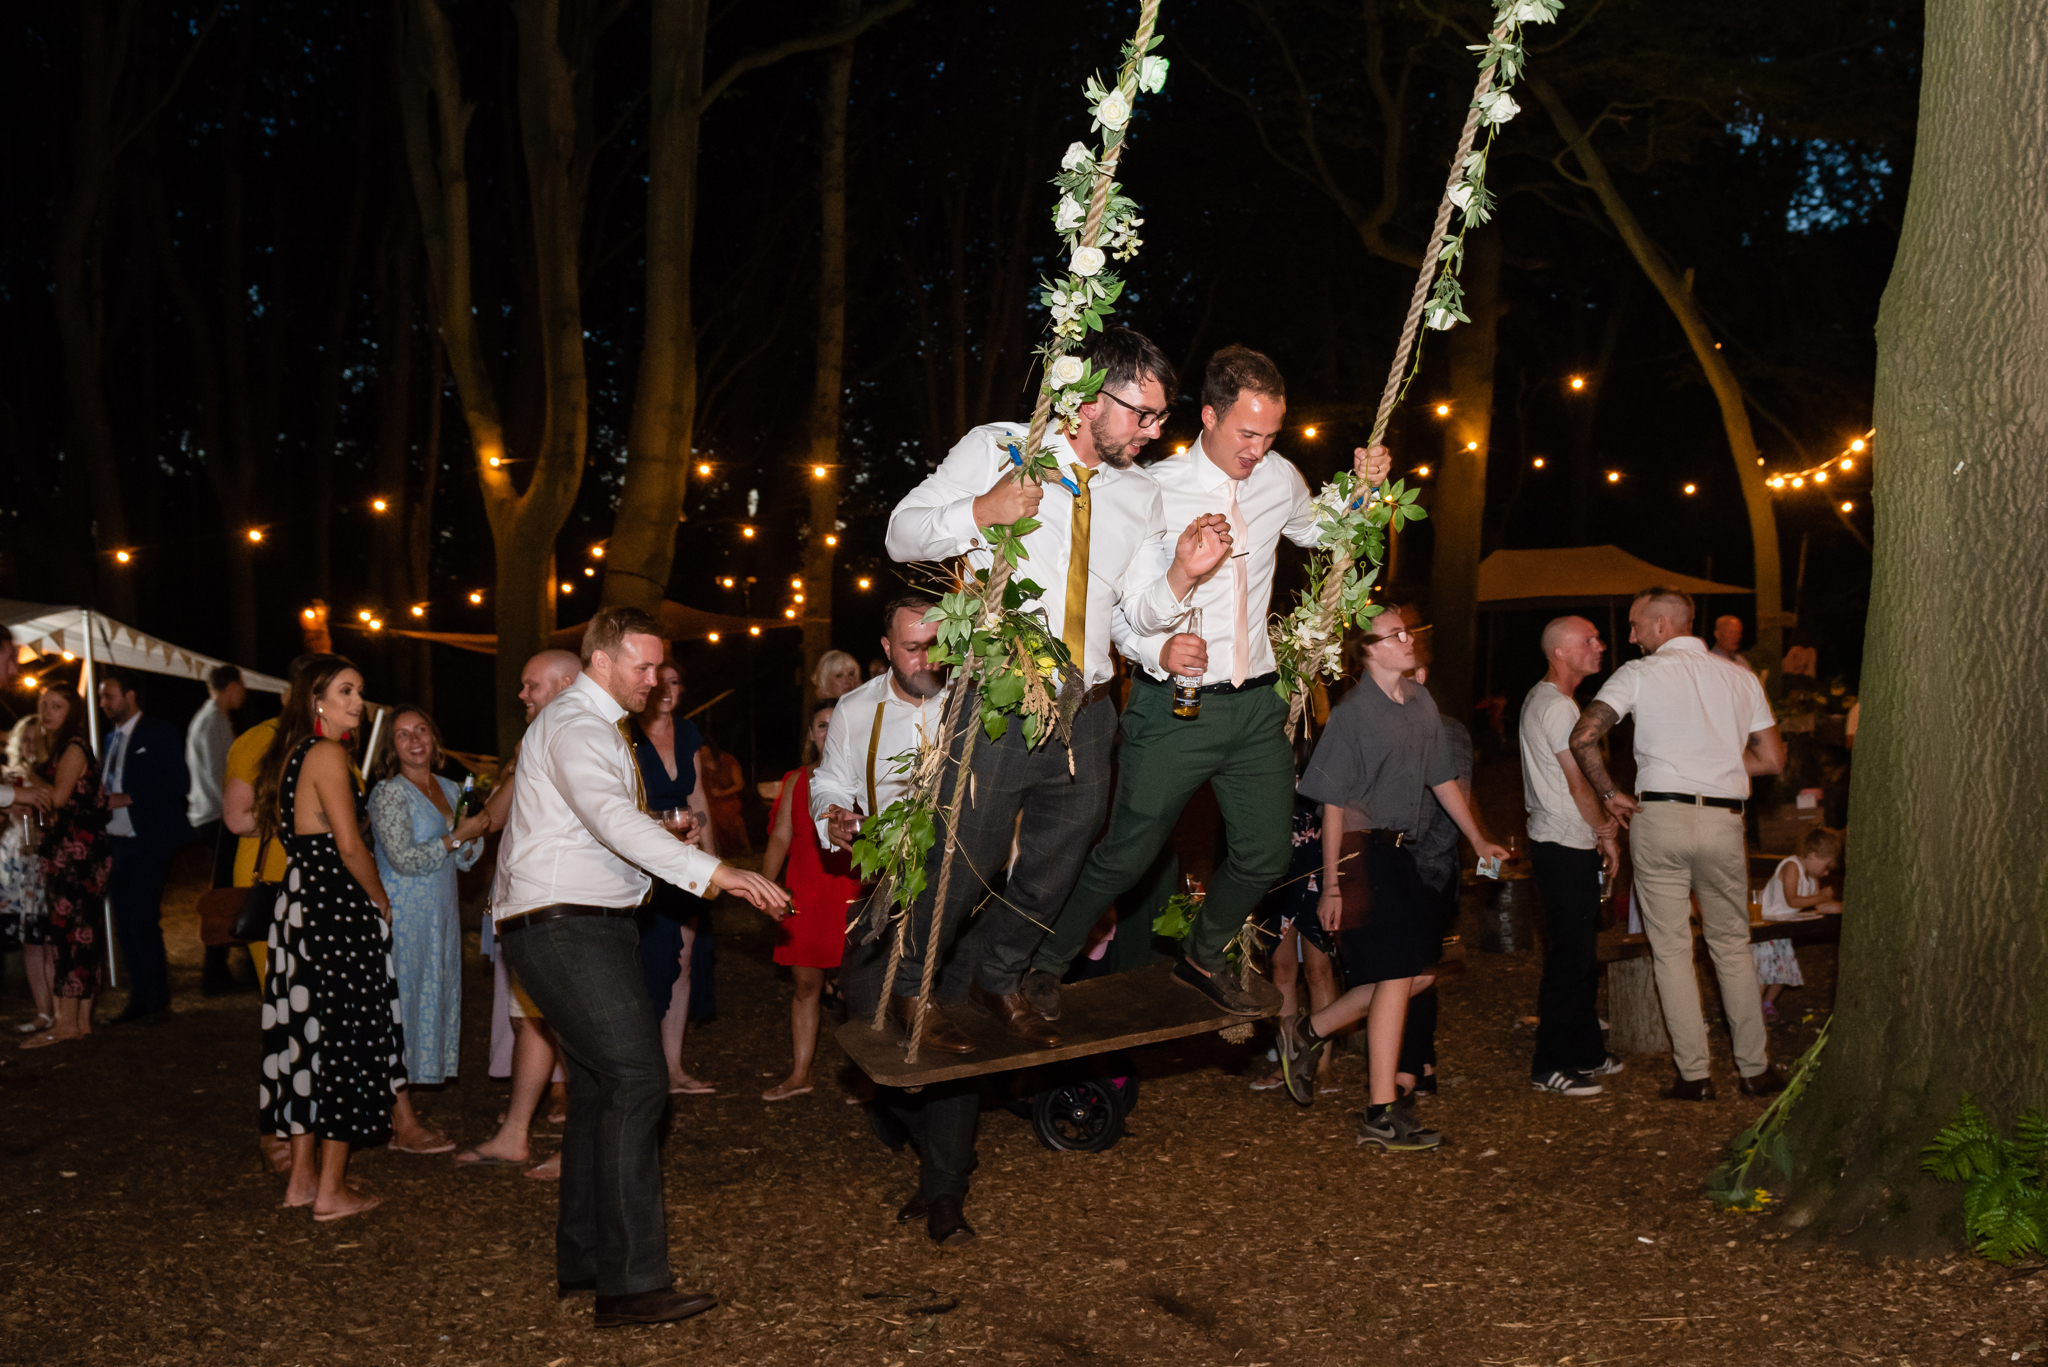 Fun on the swing at the Woodland wedding in Tring